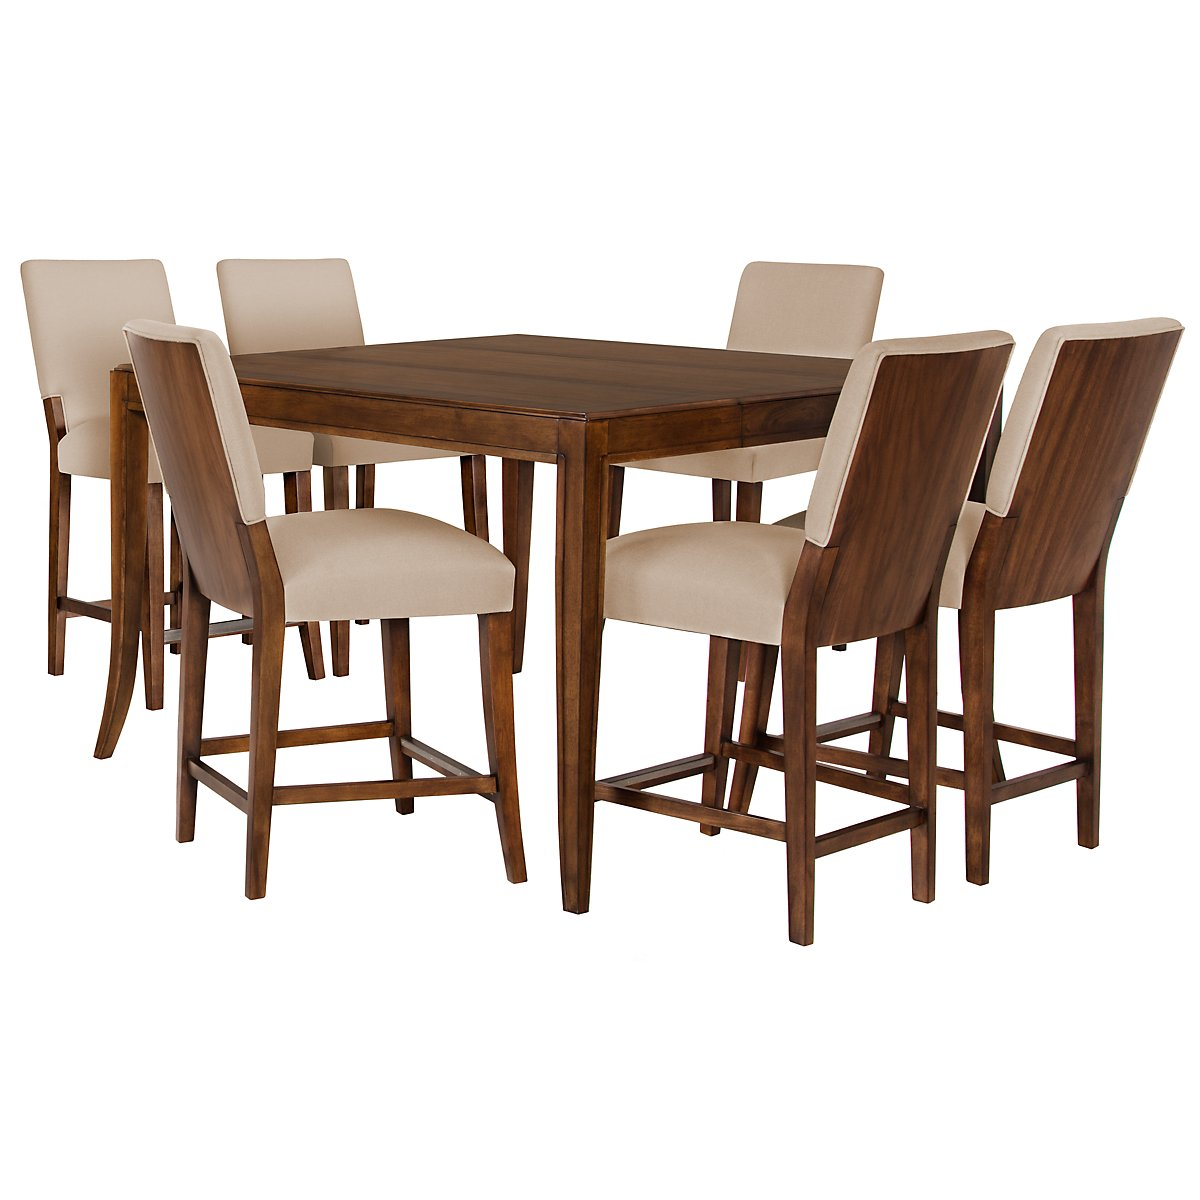 Savoy Mid Tone High Table & 4 Upholstered Barstools